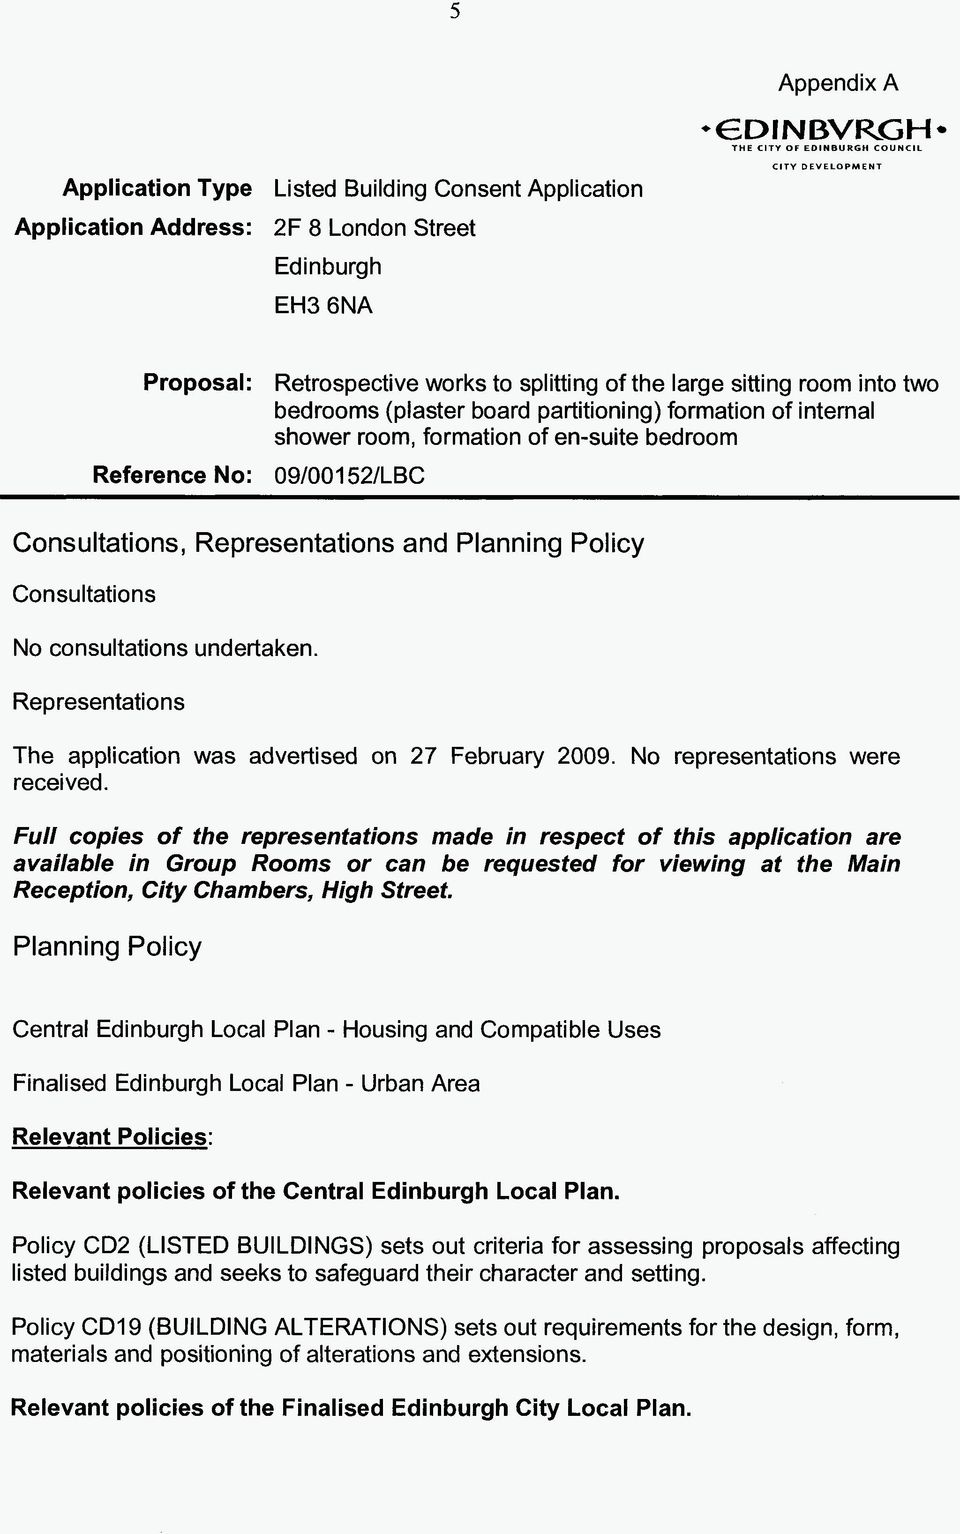 Consultations, Representations and Planning Policy Consultations No consultations undertaken. Representations The application was advertised on 27 February 2009. No representations were received.